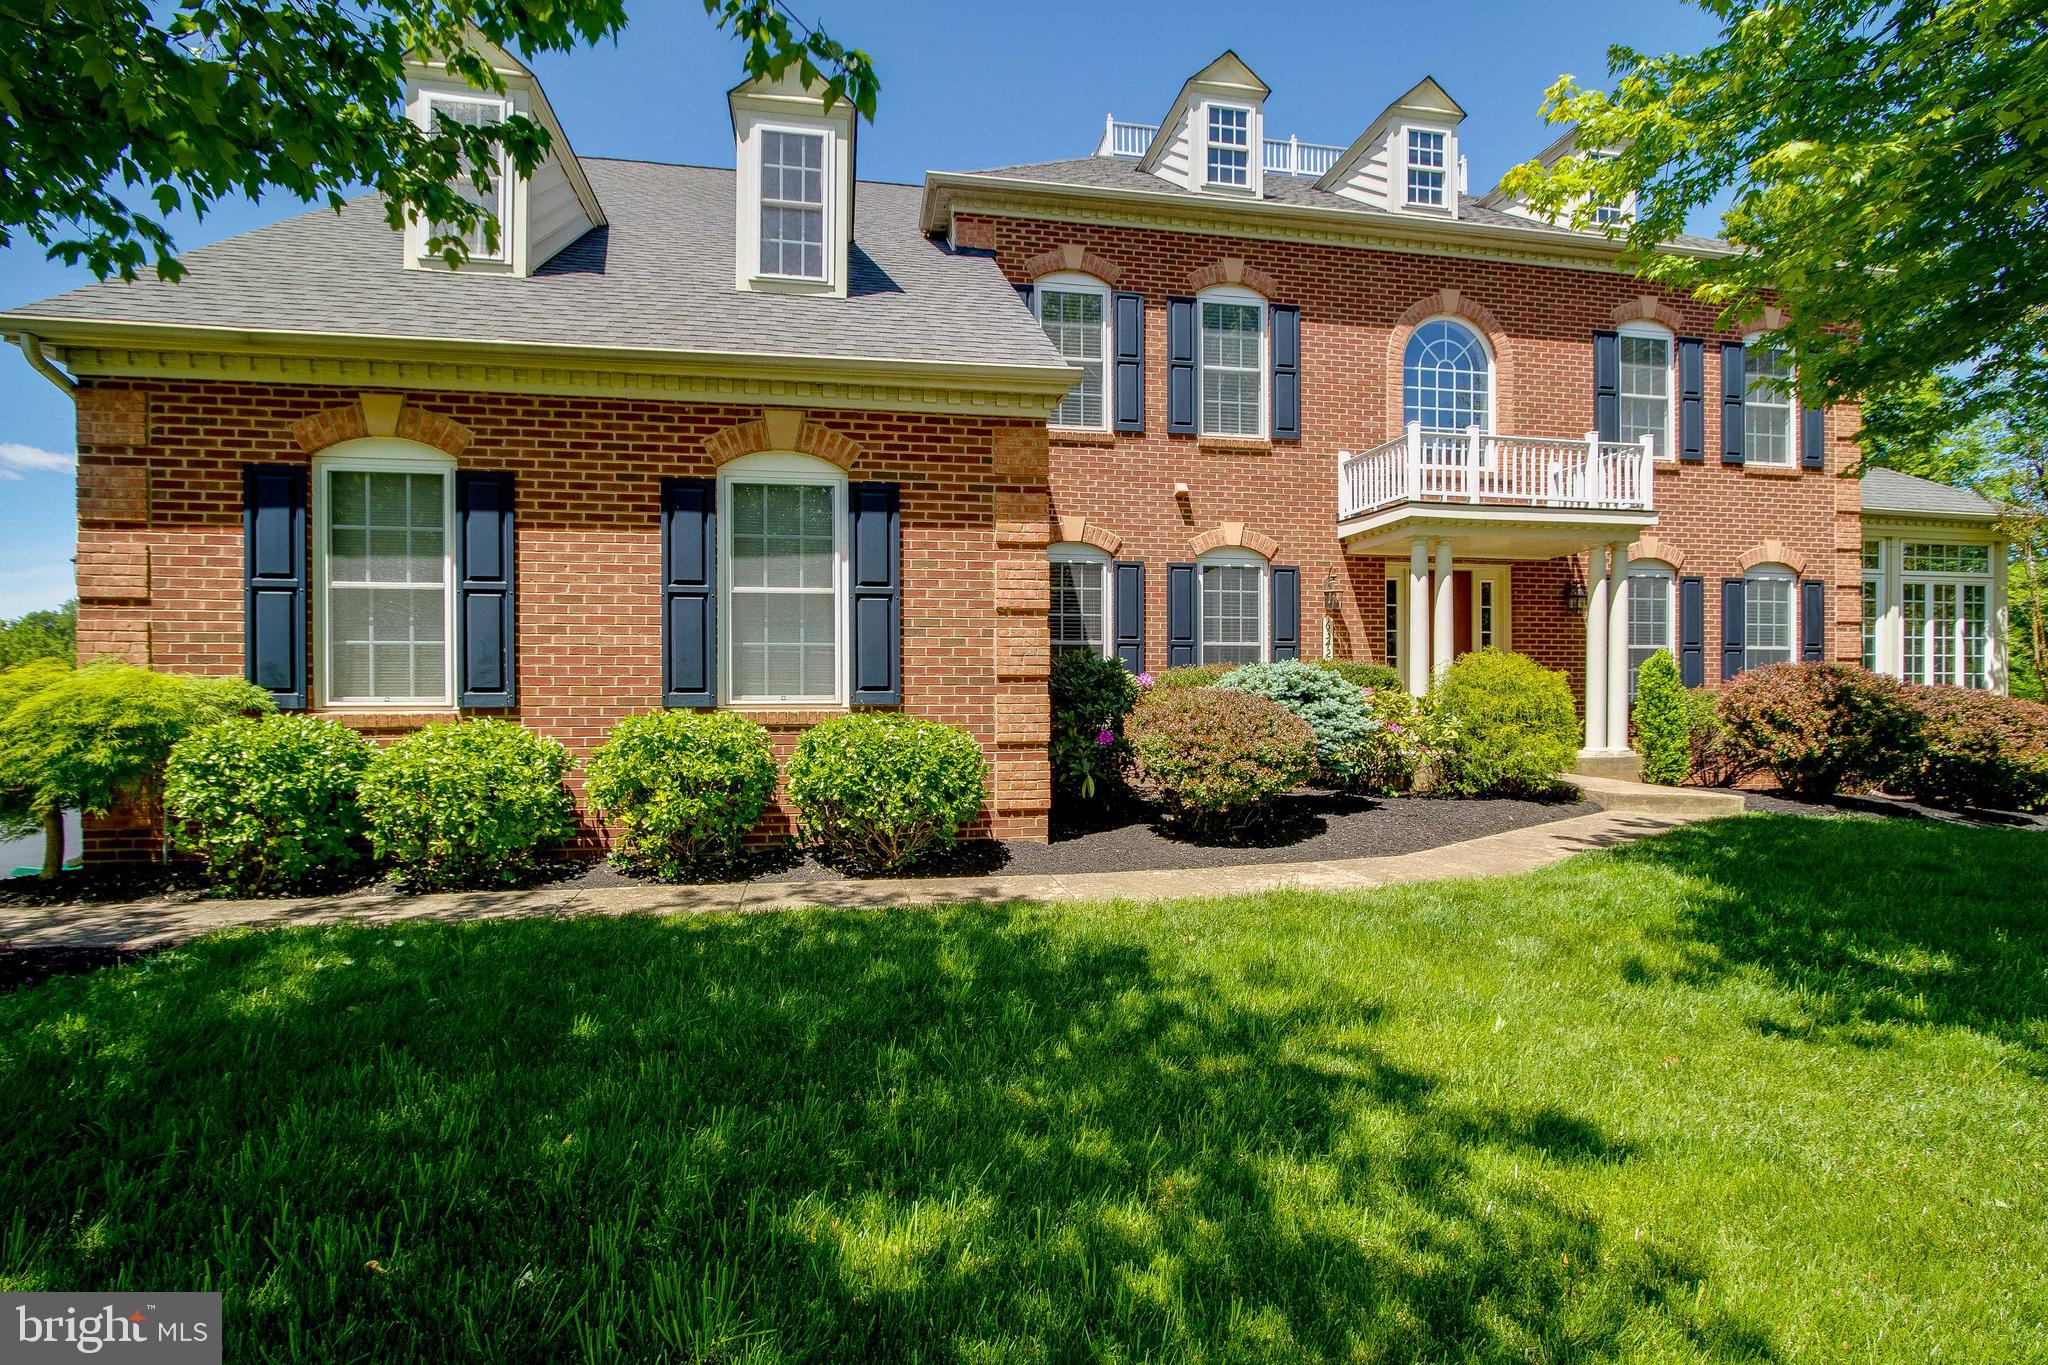 """Simply STUNNING & incredibly UPDATED 4BR/4.5BA detached home featuring OPEN, AIRY floor plan with 3-FULLY FINISHED levels boasting almost 5,800 total fin sq/ft! Stately BRICK front home with INVITING front entry with portico, 3-CAR SIDELOAD GARAGE with large driveway & brand new ROOF ('21)! Nestled in Warrenton's charming WOODS AT WARRENTON on .66-acre level, LANDSCAPED lot with AMAZING sunset & wooded views.  PHENOMENAL & PRIVATE Backyard Retreat includes maintenance-free DECK with retractable awning, multi-level CUSTOM PAVER PATIOS featuring fire pit, pergola, hot tub, retaining wall & landscape lighting! SOARING 2-Story Foyer with SUNLIT palladian window, EXQUISTE crown/chair rail/picture frame mouldings & GLEAMING HDWD flooring opens to PRIVATE Study, Living Room & Gourmet Kitchen!  Private Study with EXQUISITE crown/chair rail mouldings, recessed lighting, ceiling fan & GLEAMING HDWDs! Expansive Living Room with GLEAMING HDWDs & custom crown mouldings opens to SUN-DRENCHED SOLARIUM & Dining Room!  Builder-option SUNLIT Solarium with TRAY ceiling, GLEAMING HDWDs & WALLS OF WINDOWS with decorative transom accent windows. Spacious Dining Room boasting EXQUISITE crown/chair rail mouldings & GLEAMING HDWDs opens to Living Room & Gourmet Kitchen.  Gourmet Kitchen with AMPLE 42"""" cabinets, large center ISLAND, spacious pantry, GRANITE countertops, UPGRADED stainless appliances, recessed lighting & GLEMAING HDWDs opens to Breakfast, Family & Mud/Laundry Rooms!  Breakfast Room with PARK-LIKE treed views, SOARING cathedral ceiling with fan & GLEAMING HDWDs opens to Backyard Retreat, Gourmet Kitchen & Family Room!  Large Family Room with COZY gas fireplace, GLEAMING HDWDs & floor-to-ceiling windows with transom accents & views of SECLUDED backyard.  GLEAMING HDWD stairs with NEW carpet runner ('21) opens to Upper Level Hall with HDWDs! EXPANSIVE Primary Bedroom with TRAY ceiling with fan, SITTING ROOM, gigantic walk-in closet & PRIVATE Primary Bath!  Primary Bath with DOUB"""